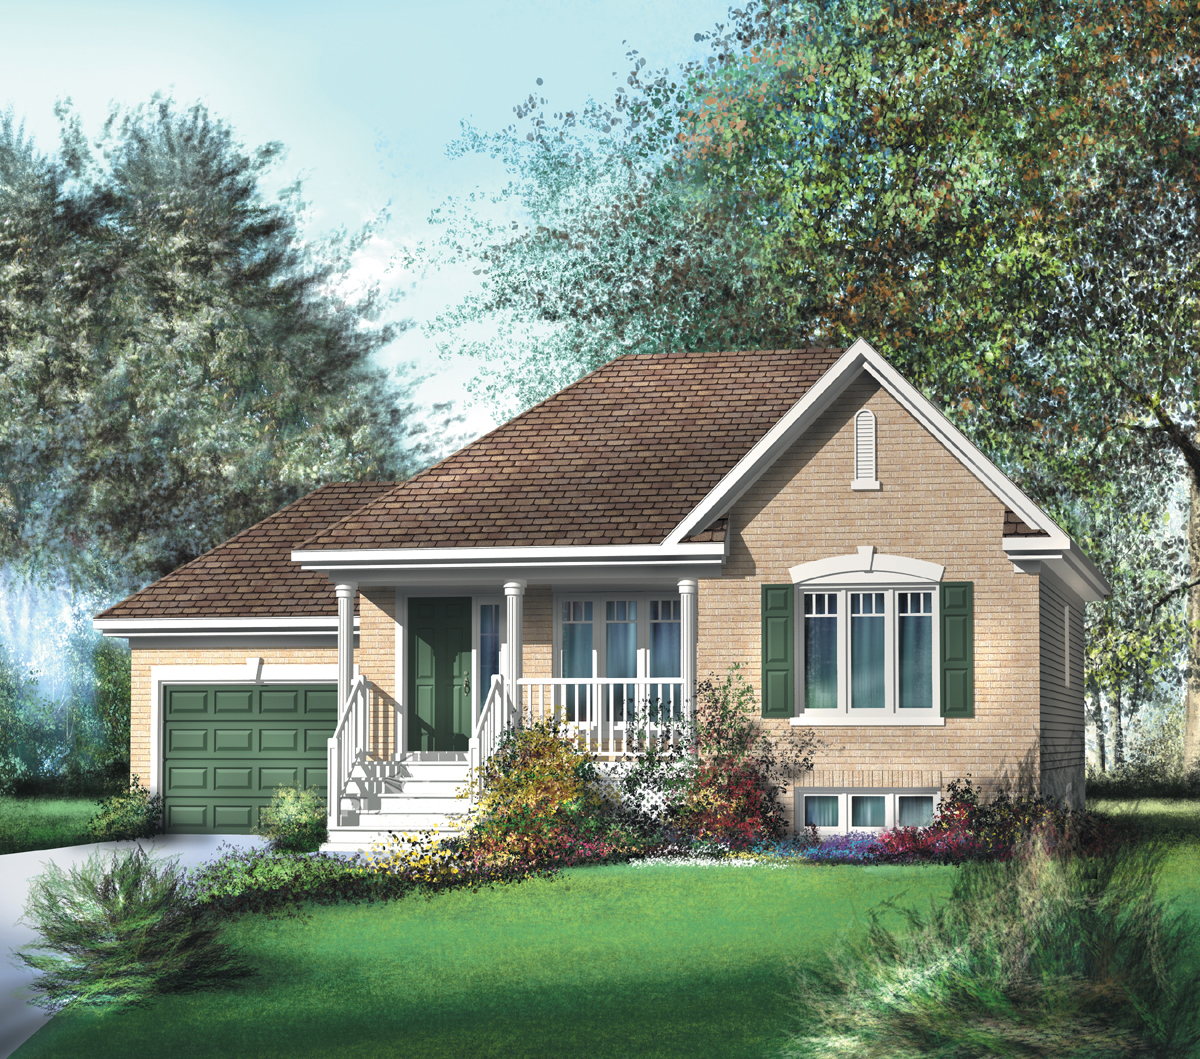 Traditional bungalow house plan 80362pm 1st floor for Classic bungalow house plans